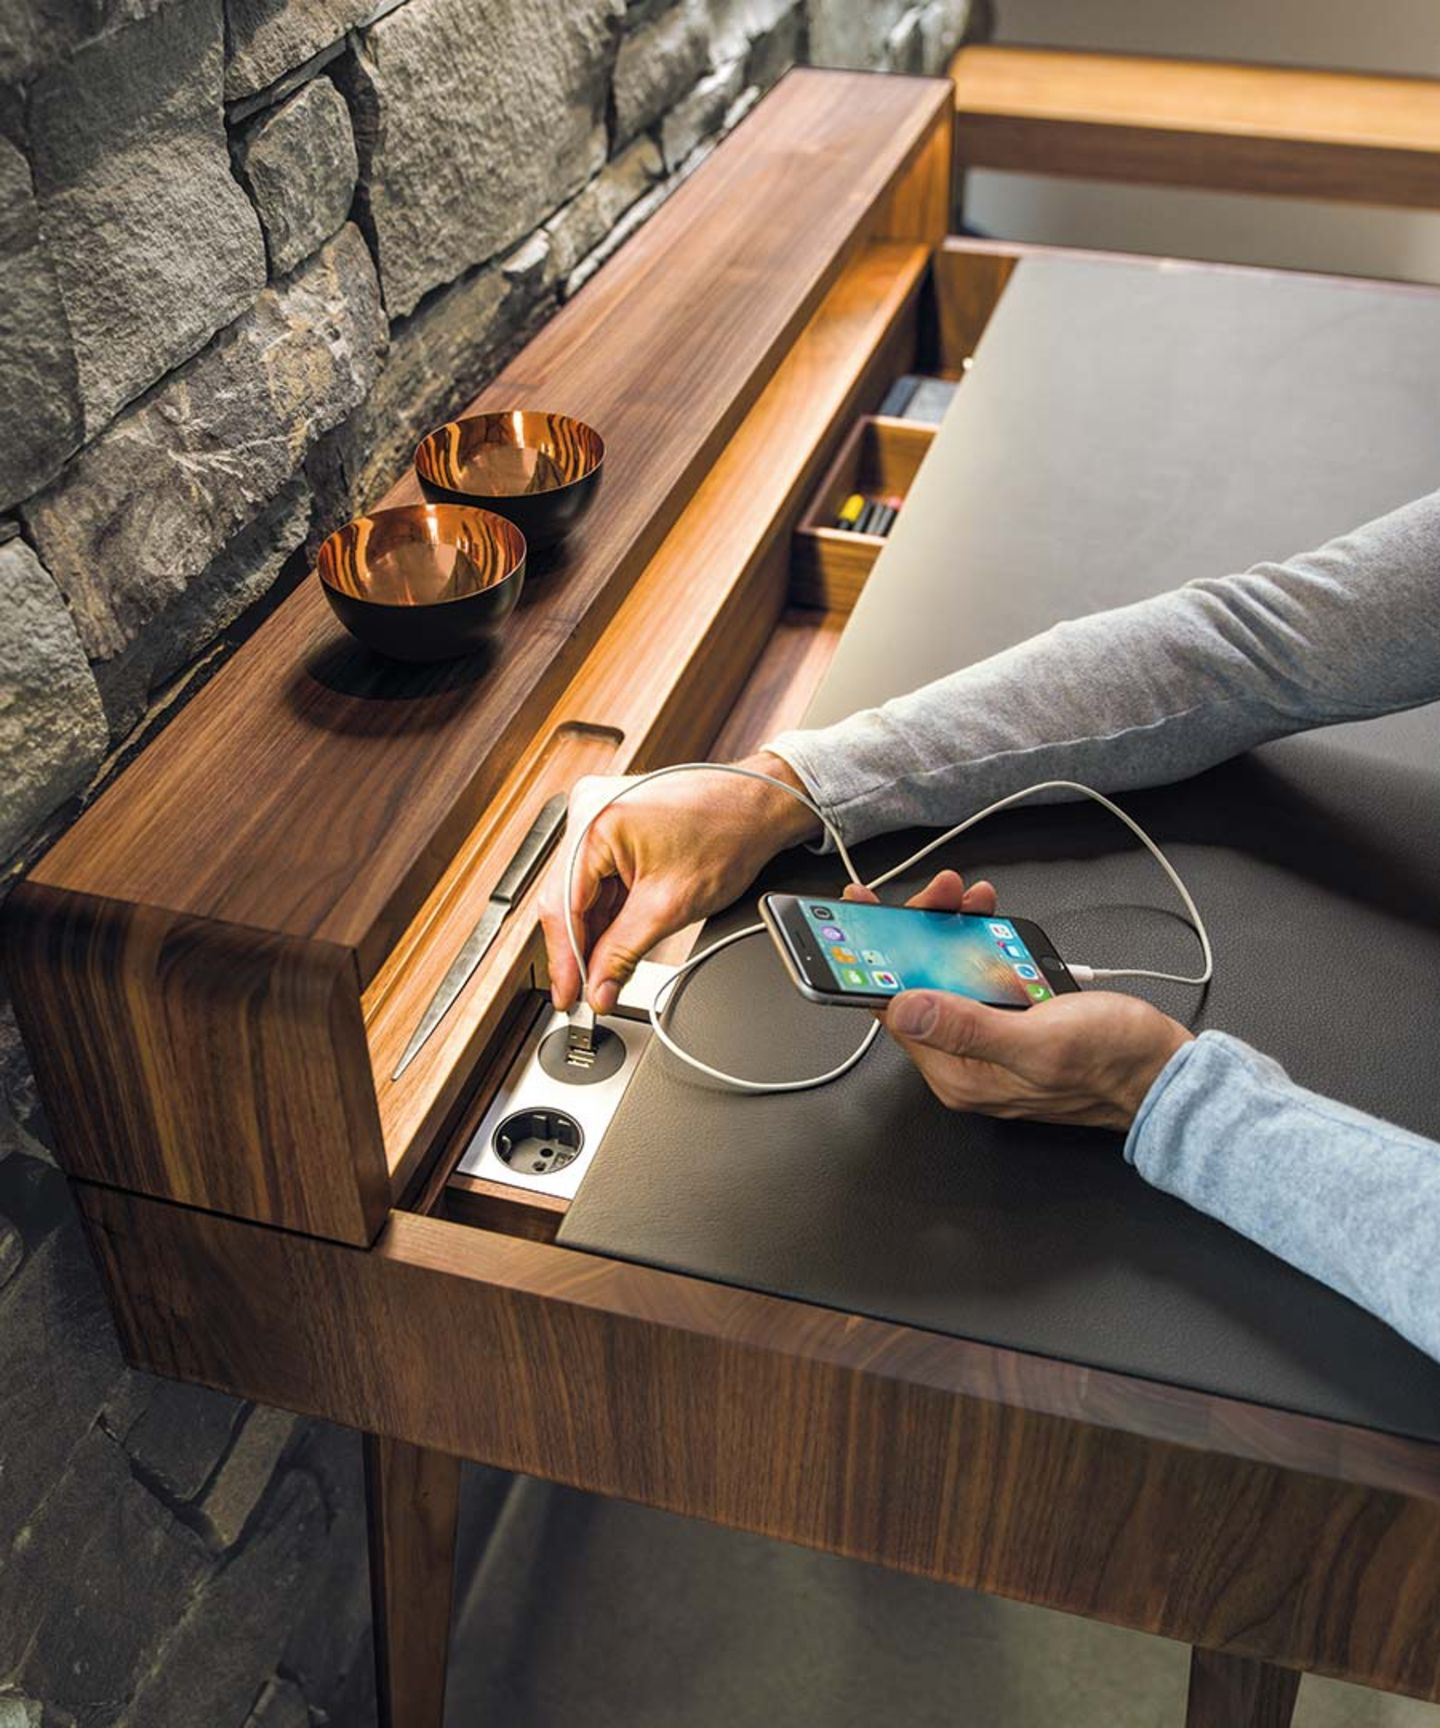 sol desk with integrated sockets and USB-connection